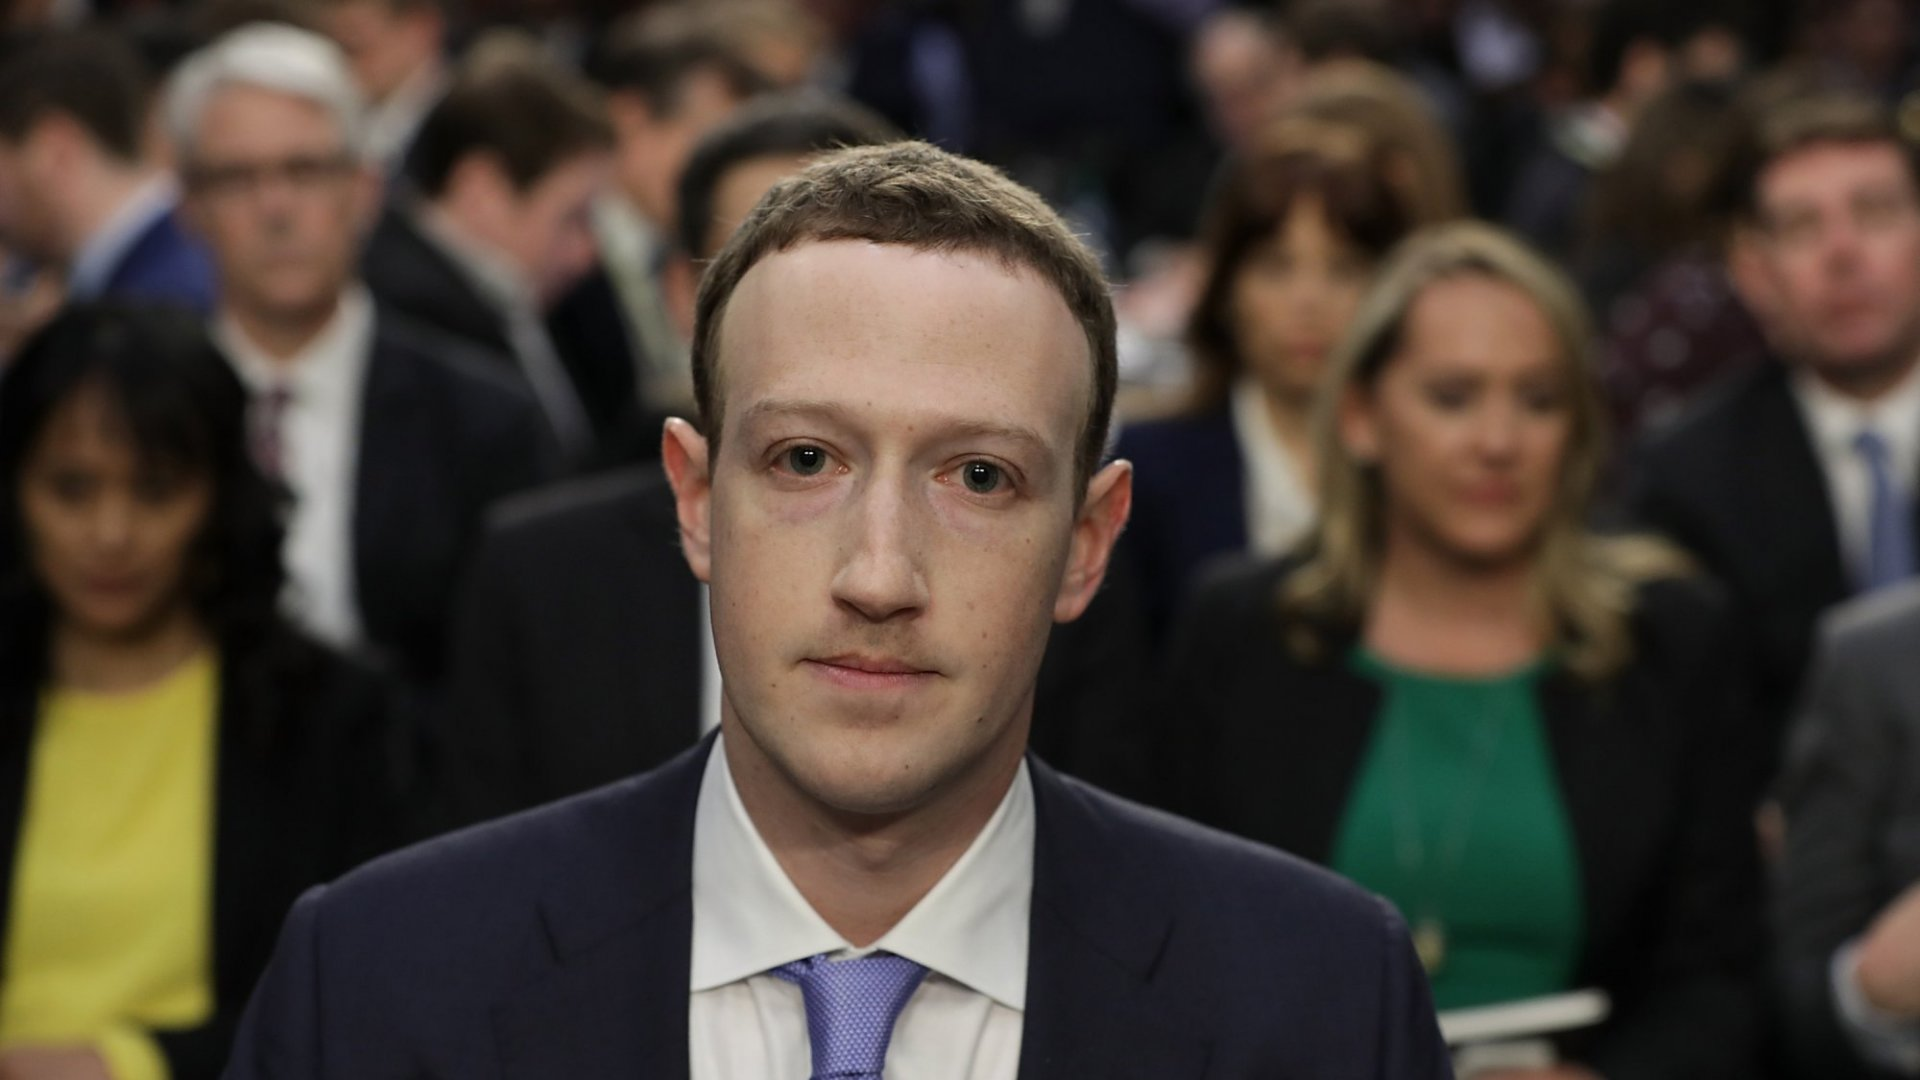 Facebook Is Finally Set to Receive a Huge Fine Over the Cambridge Analytica Data Breach. Here's What to Expect for Zuckerberg and His Company